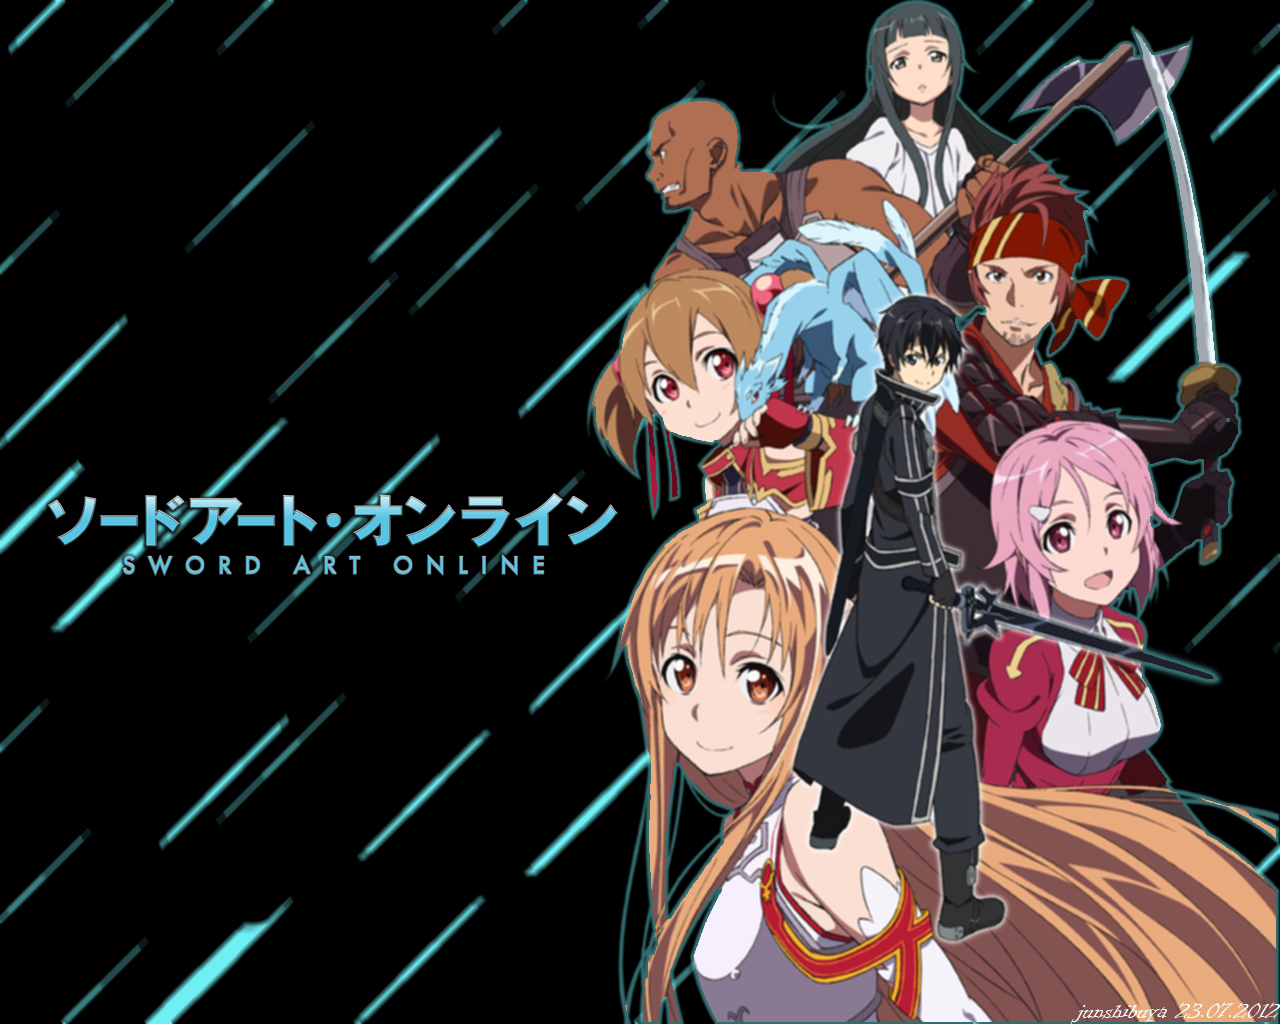 sword art online movie - photo #10